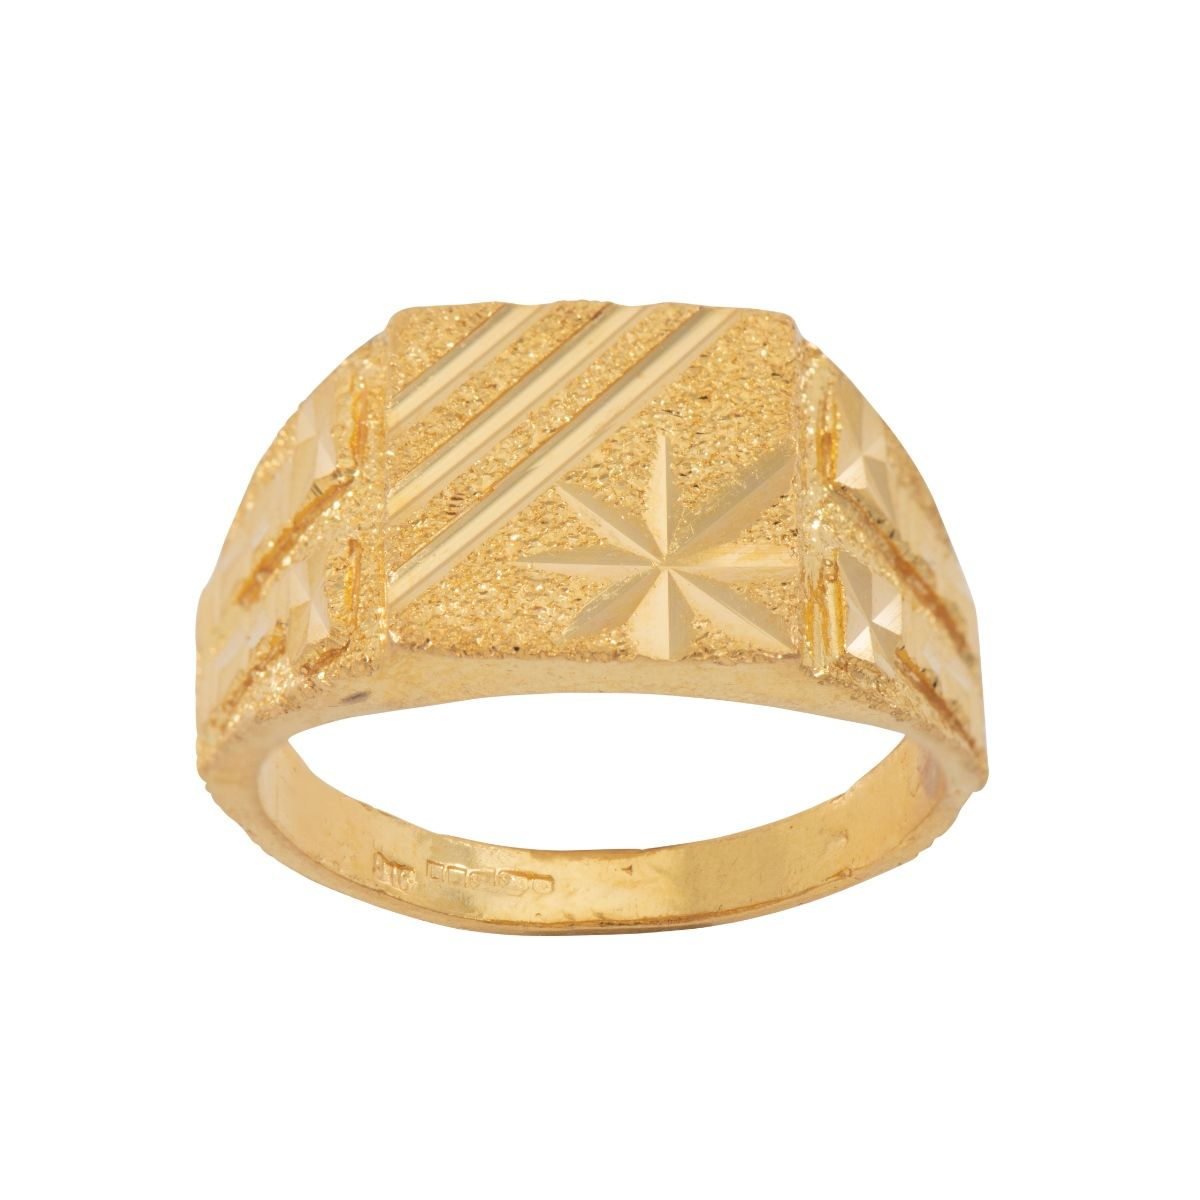 22ct Gold Patterned Signet Ring Mens Size T